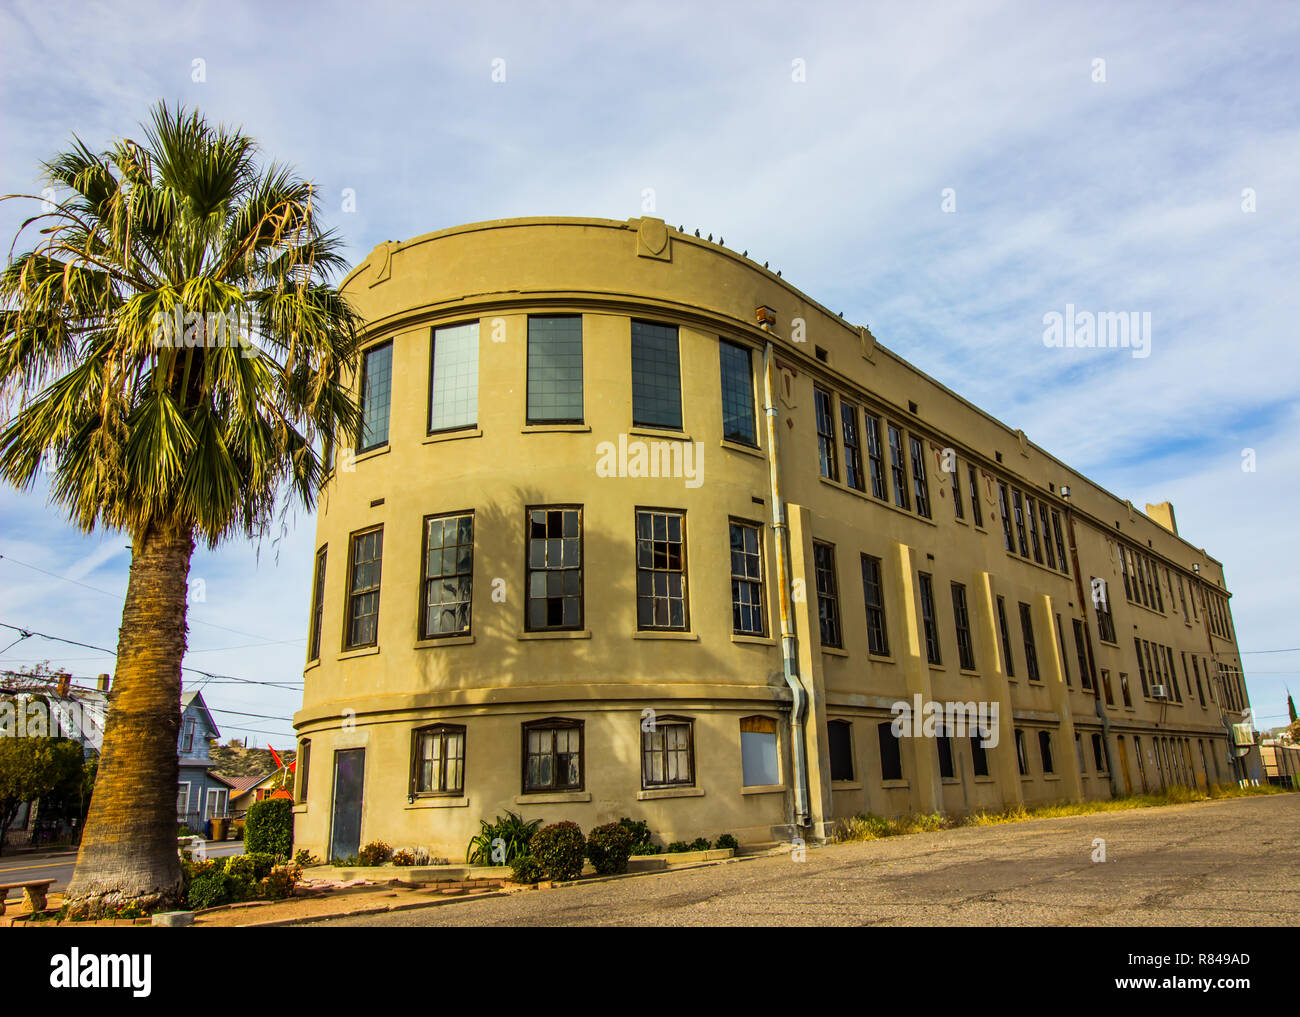 Abandoned Retro Three Story Building With Rounded Front - Stock Image